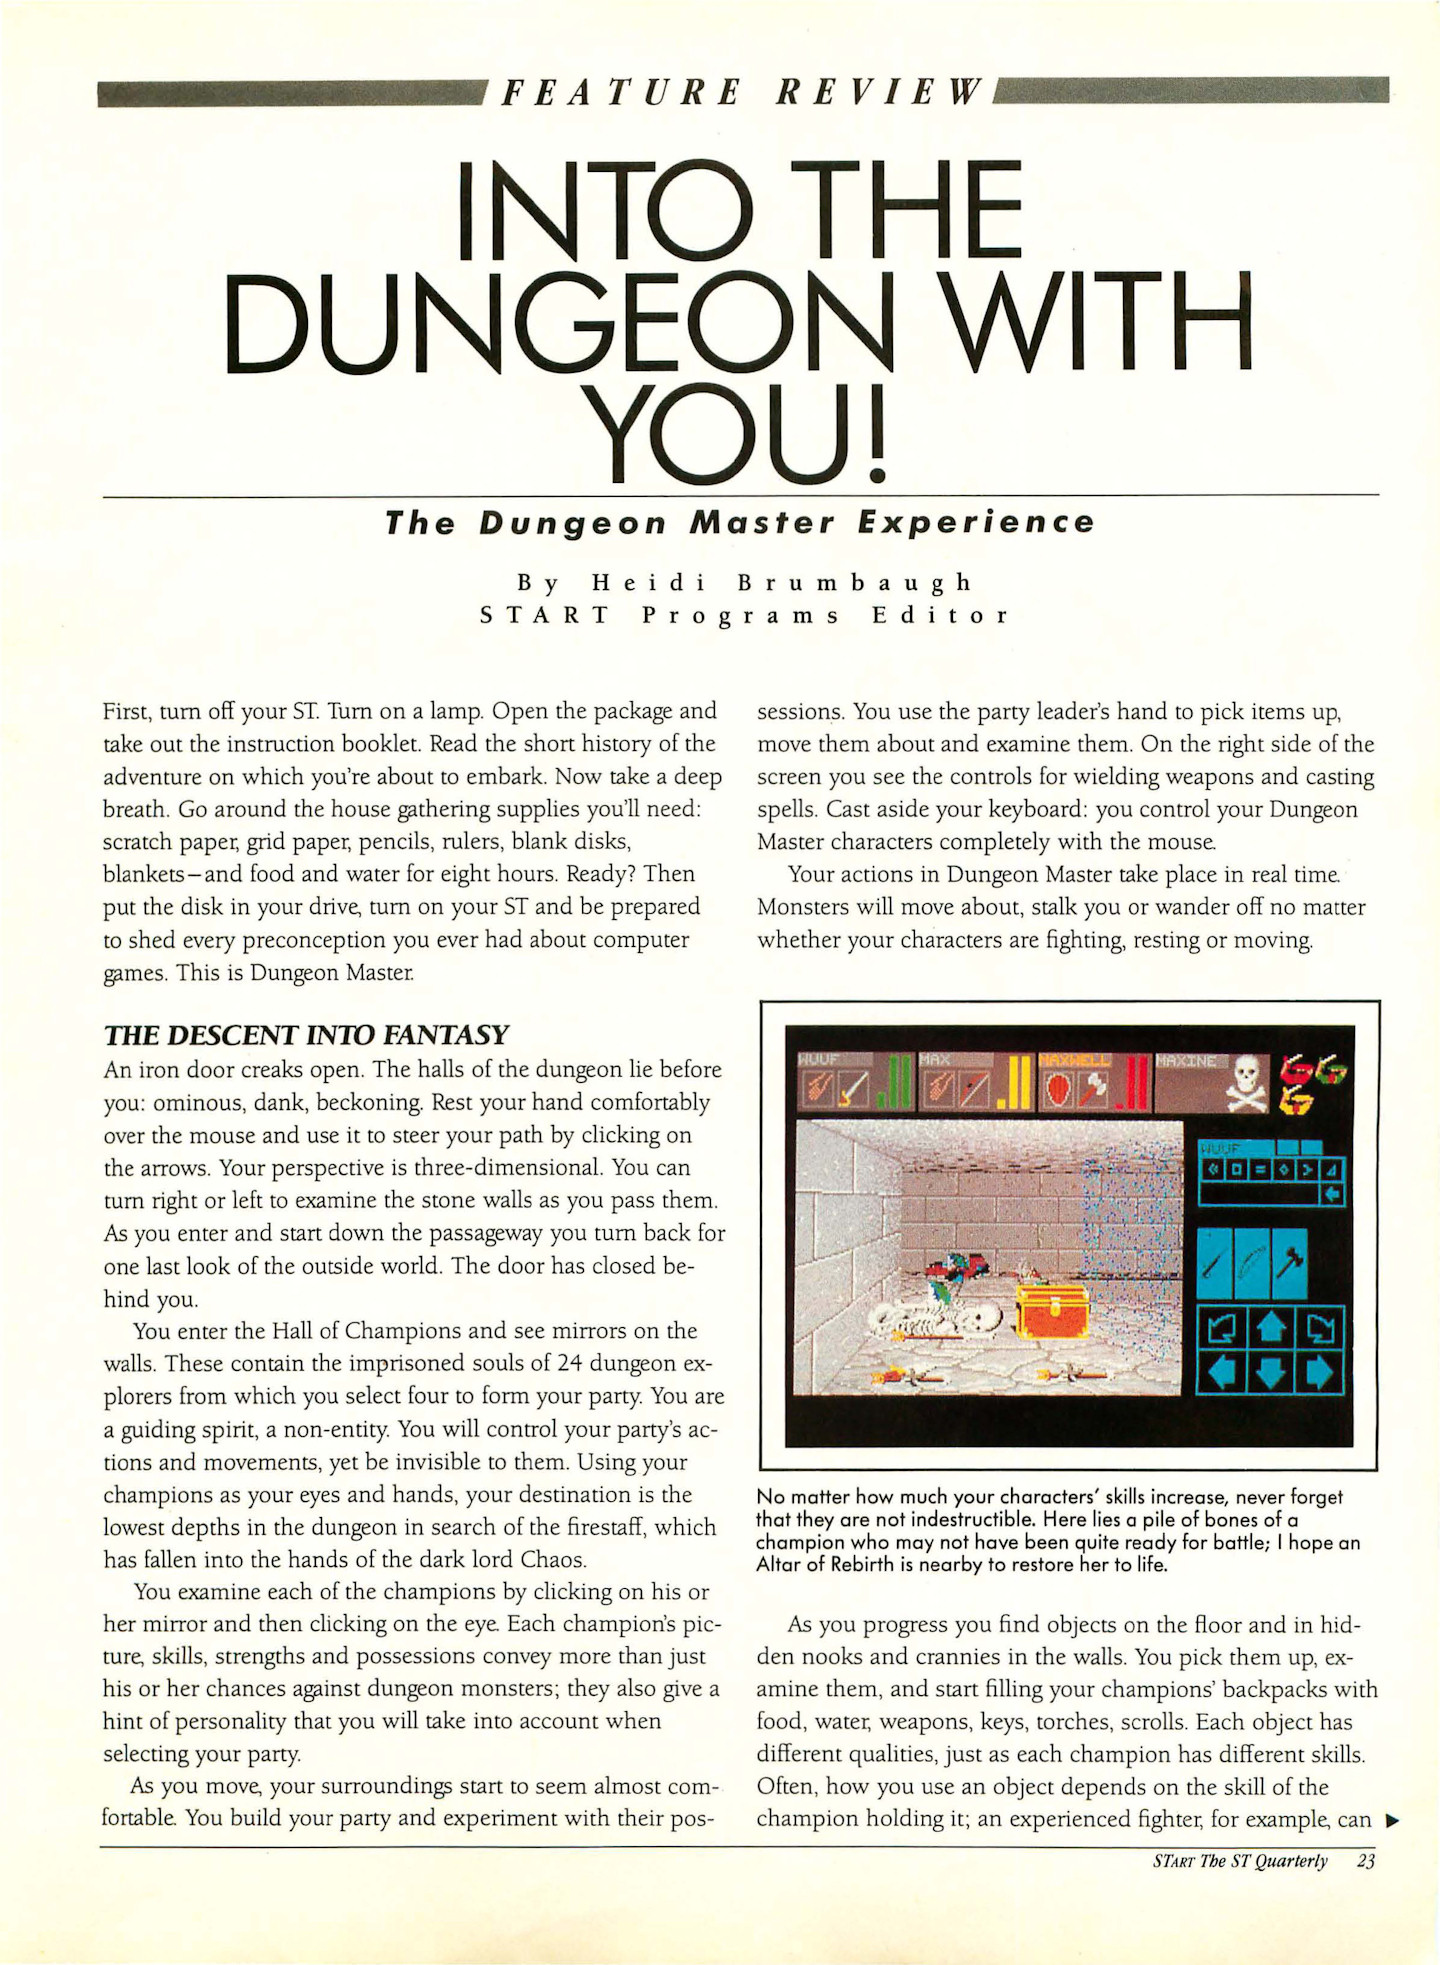 Dungeon Master for Atari ST Review published in American magazine 'Start', Vol 3 No 2 Special issue #4 September 1988, Page 23